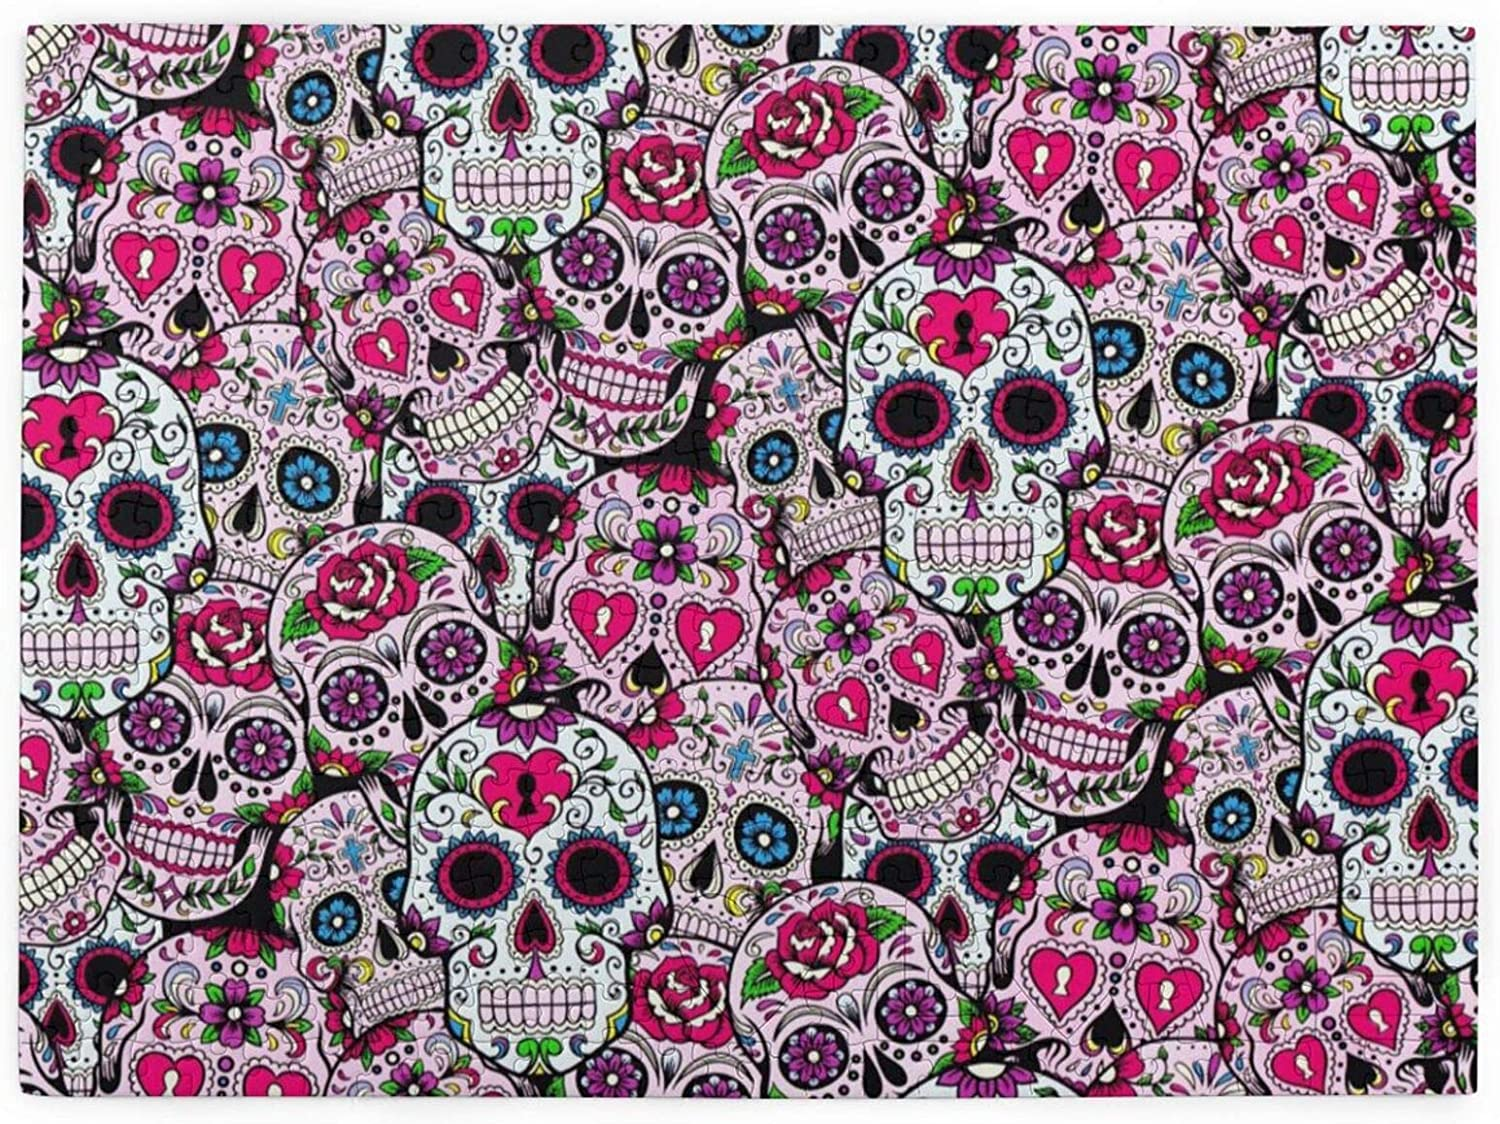 Nigorsd Day of The Dead Sugar Skulls 520 Pieces Jigsaw Puzzle for Educational Gift Home Decor, Boredom Buster Activity, Brain Teaser for Adults Teens